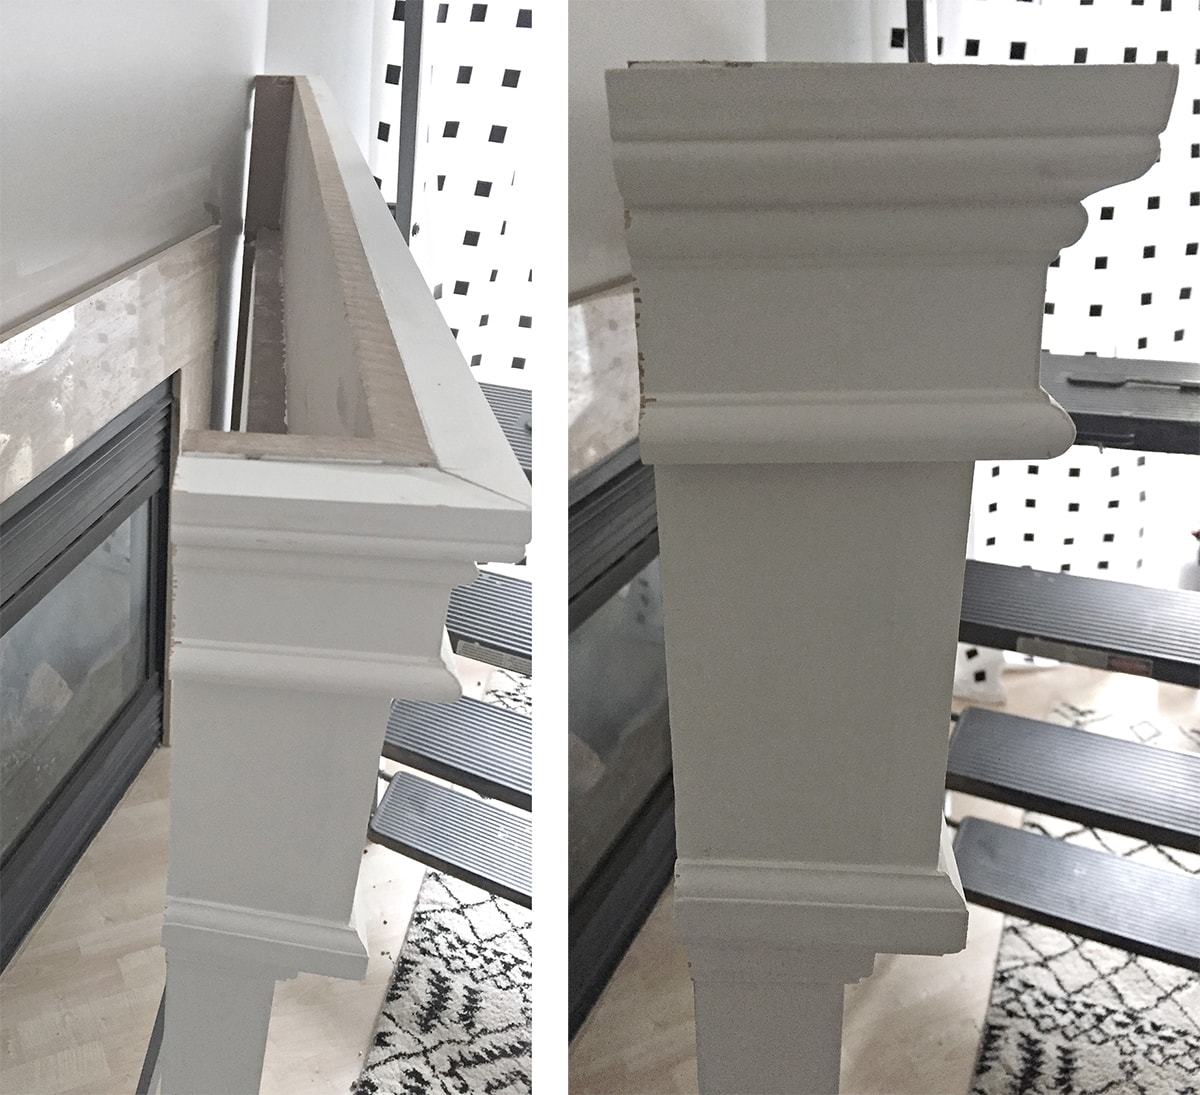 more fireplace sources and details cuckoo4design